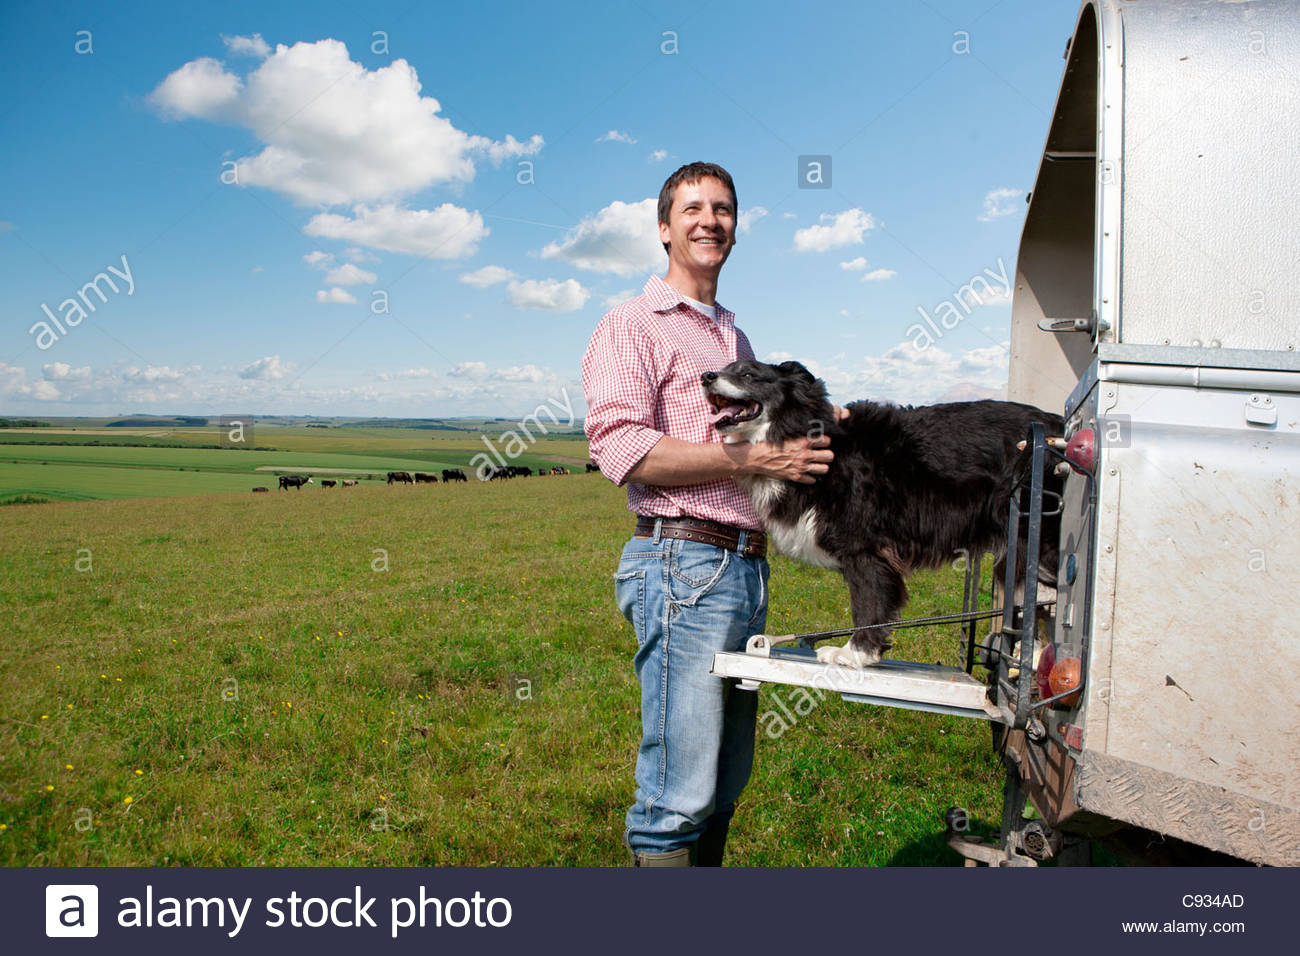 Portrait of smiling farmer petting dog on tailgate of truck in field - Stock Image